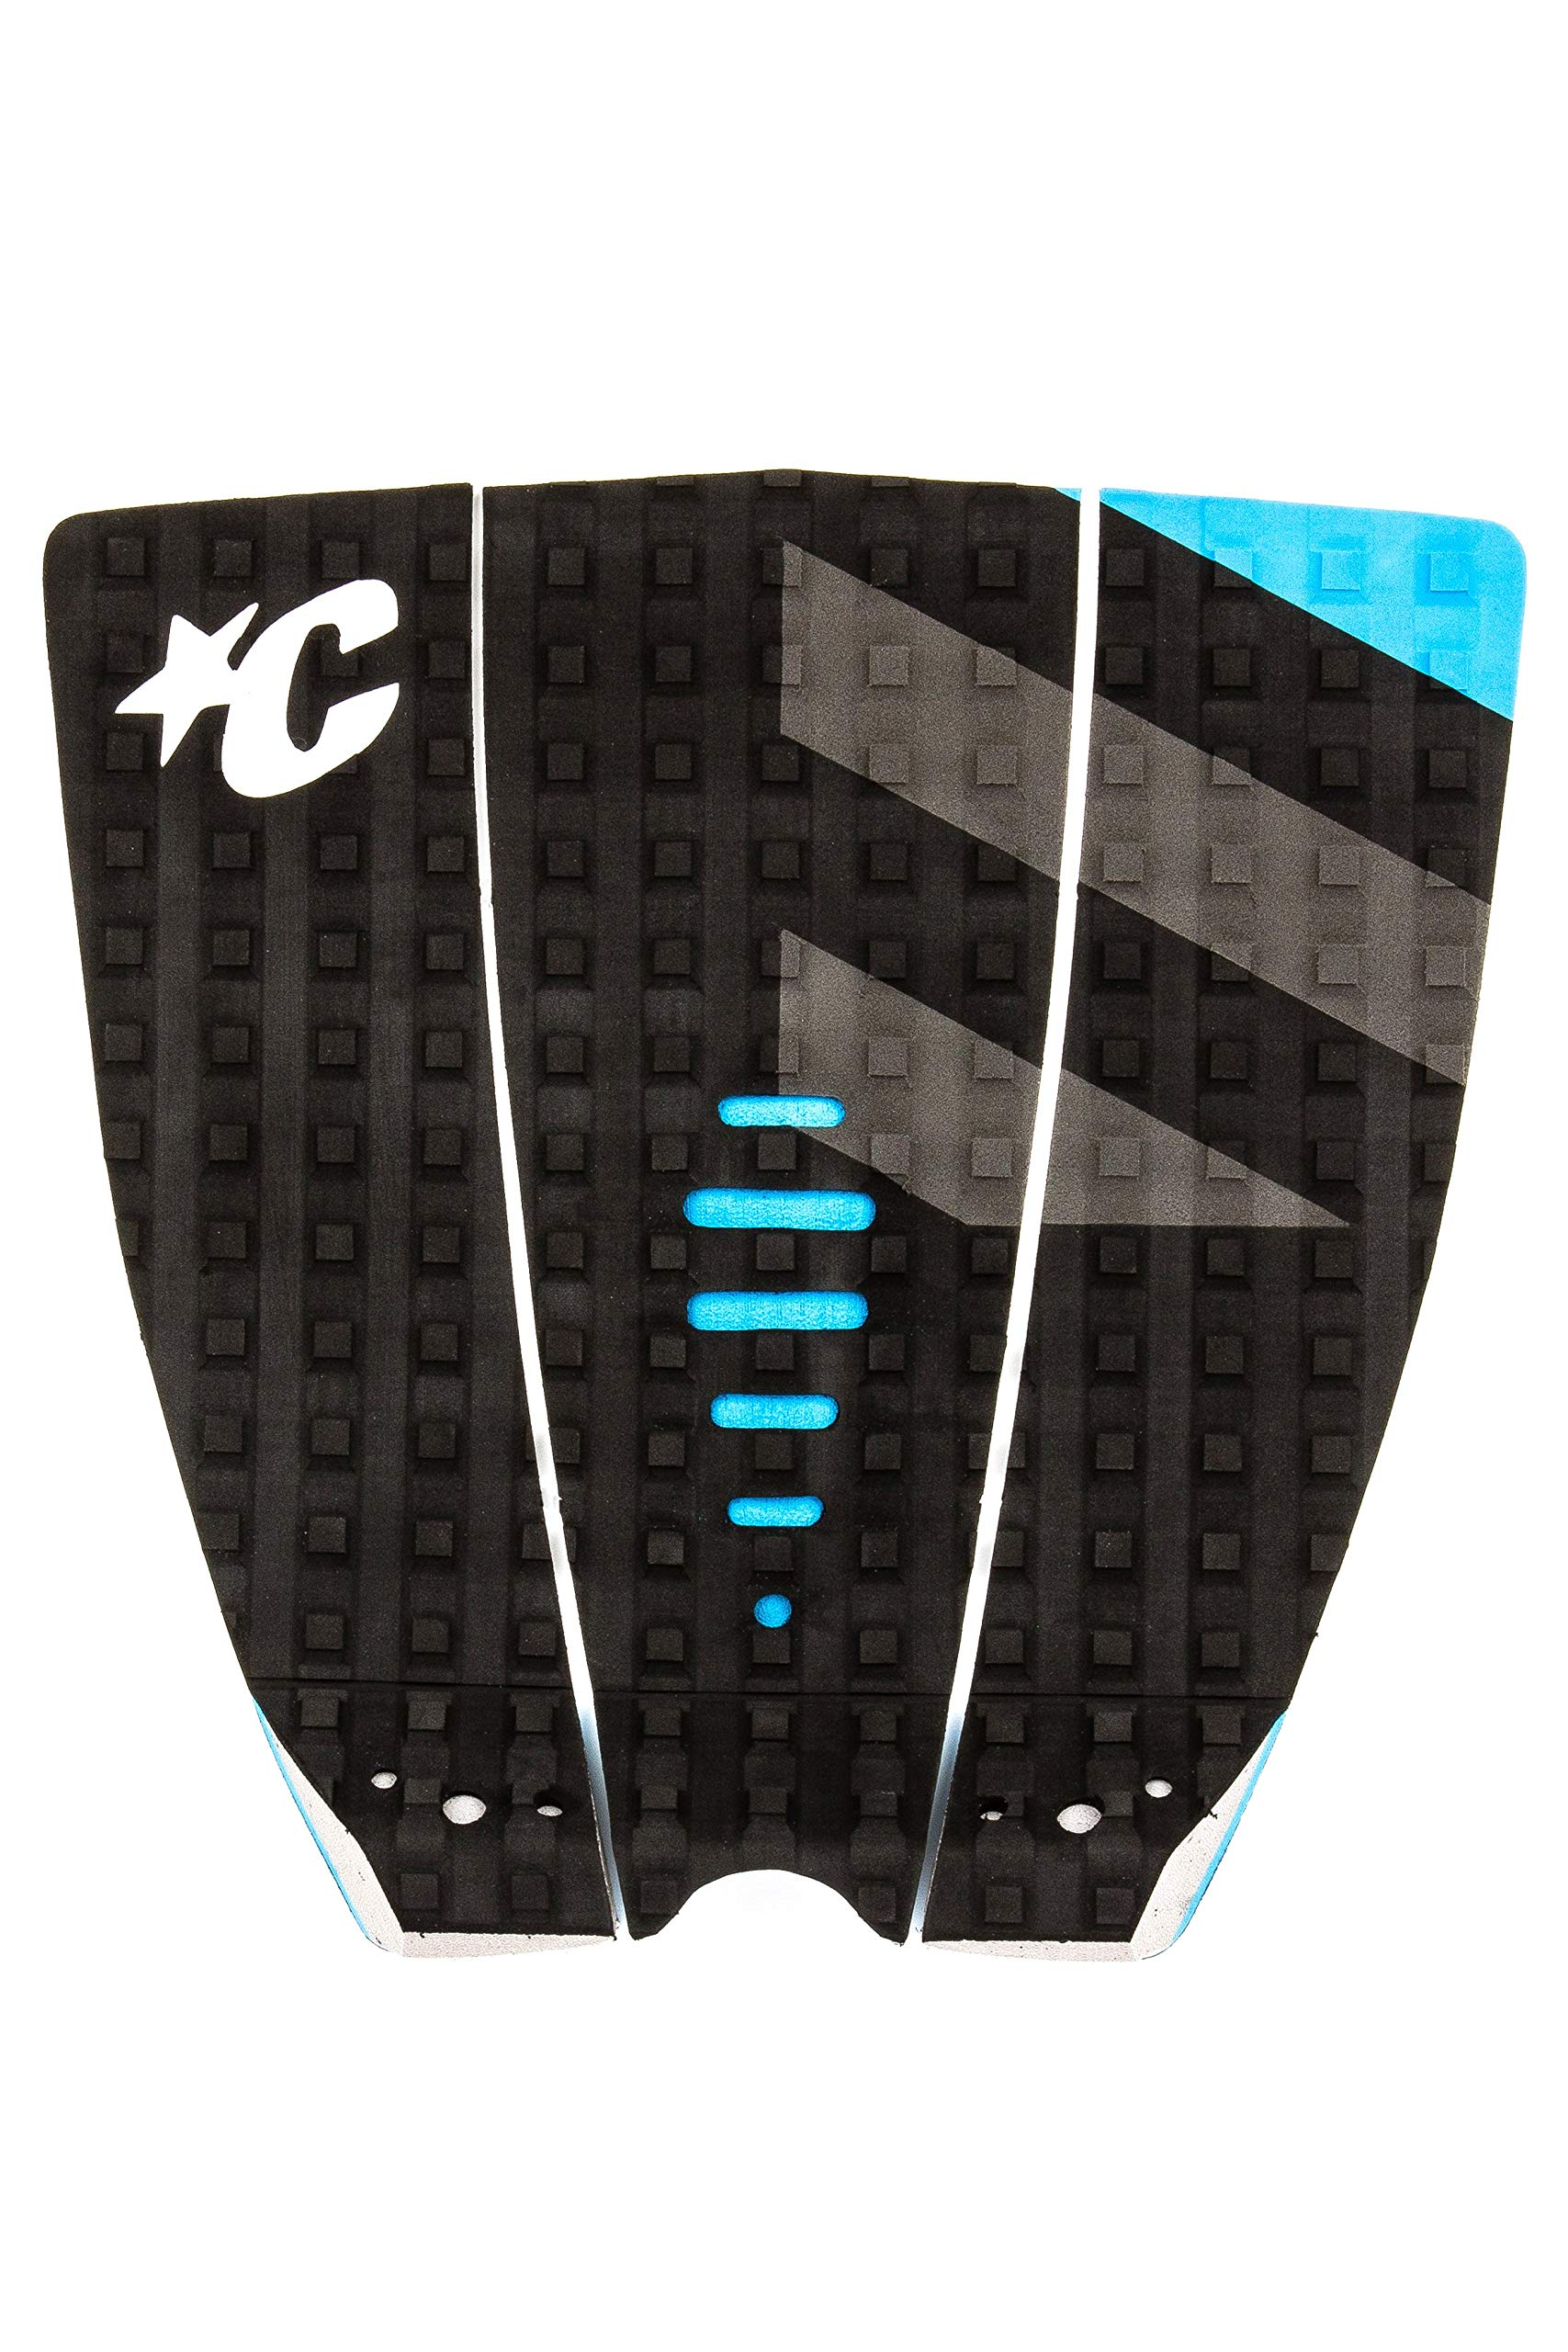 Creatures of Leisure Mick Fanning Traction Pads by Creatures of Leisure